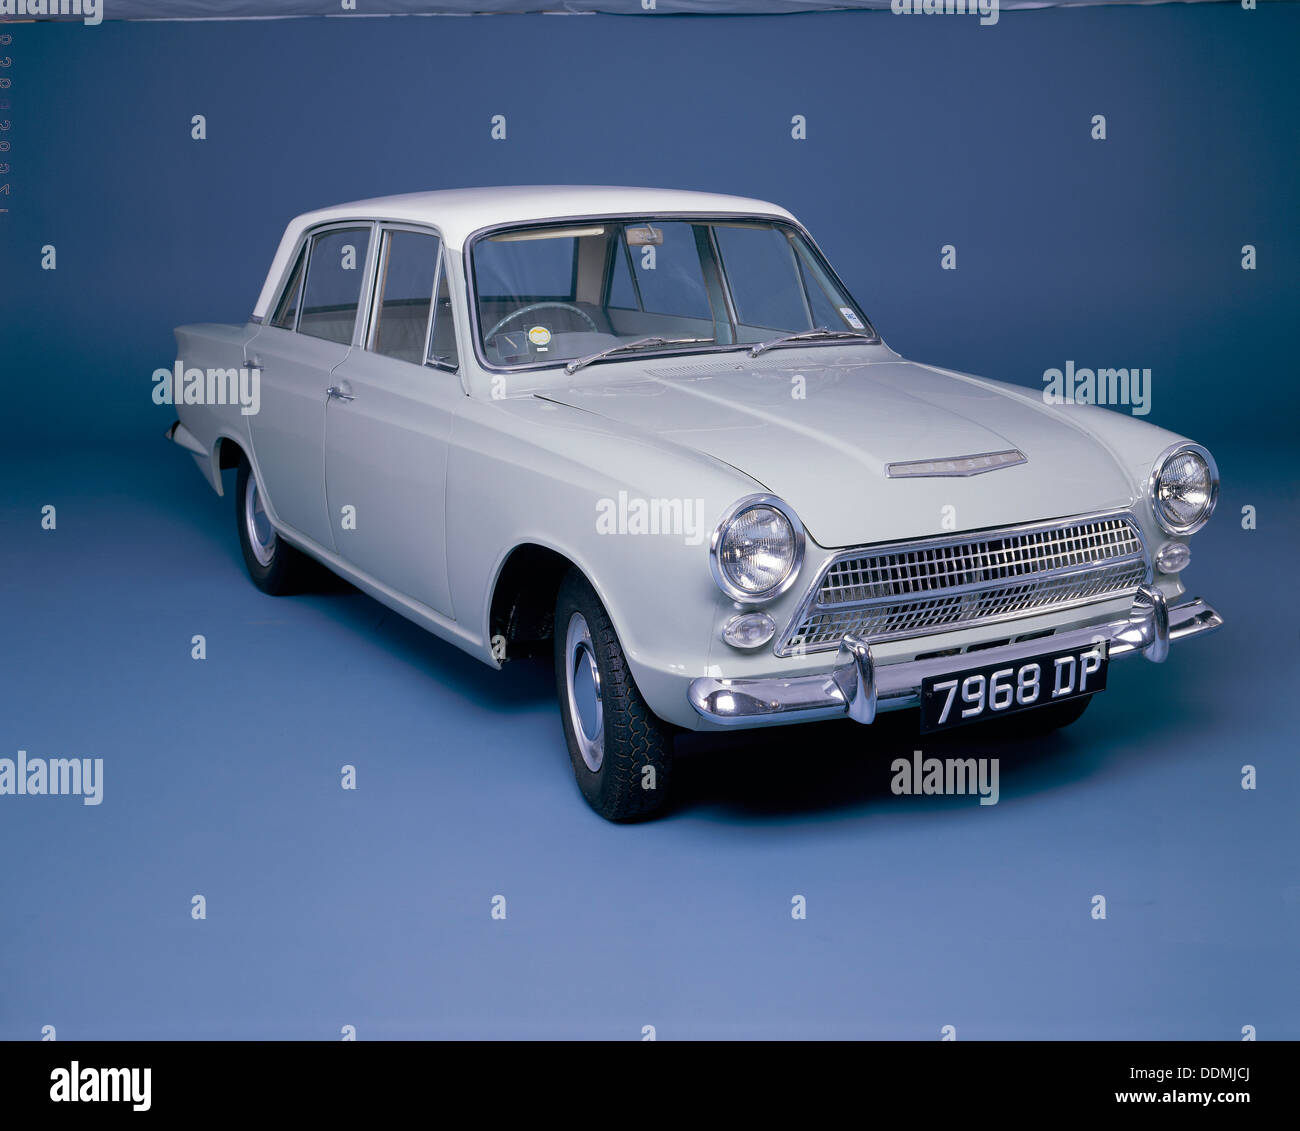 1962 Ford Consul Cortina. Stockbild